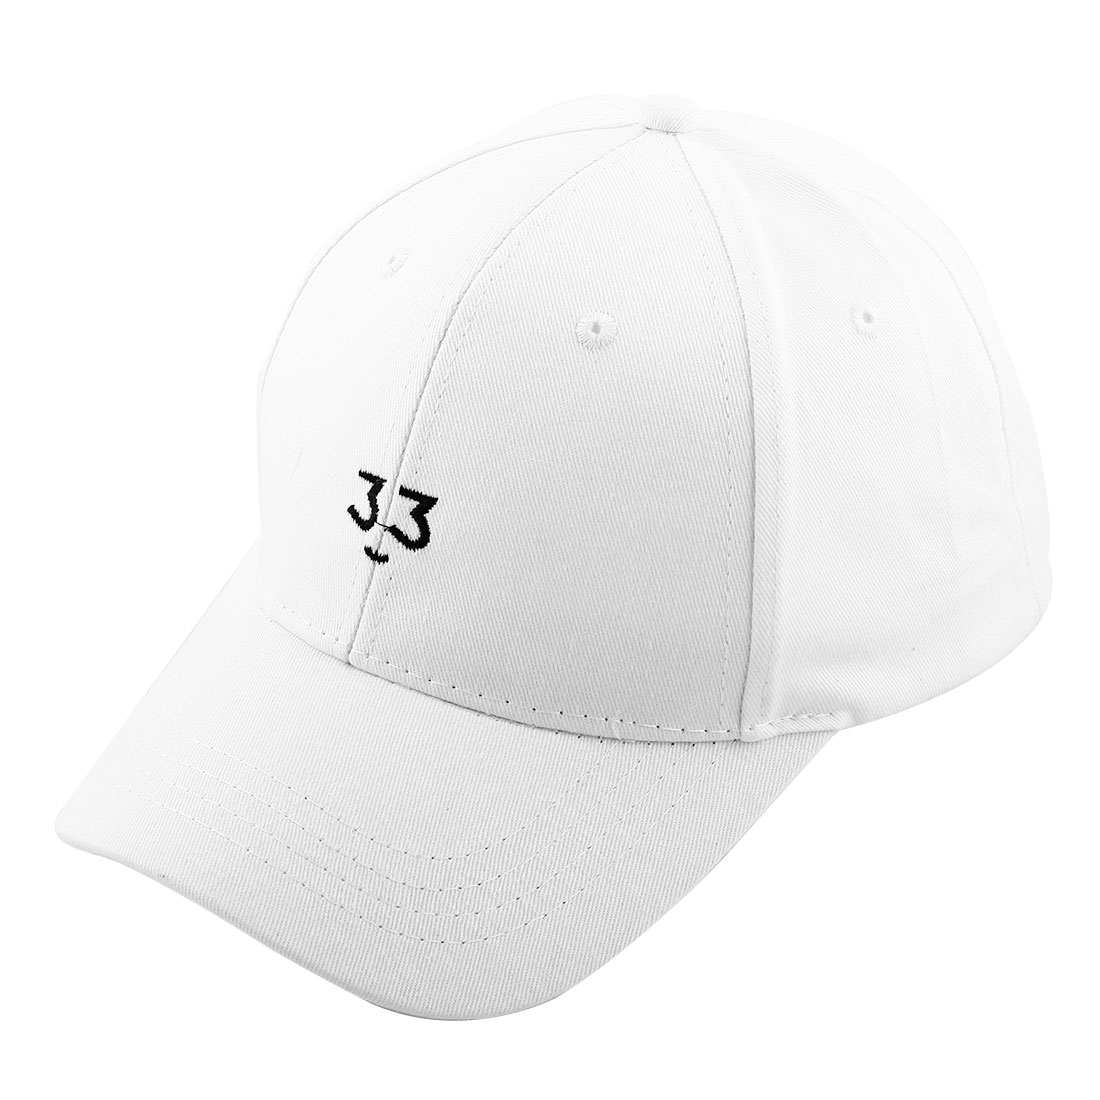 Spring Sports Cotton Blends 6 Panel Adjustable Loop Golf Baseball Cap Portable Snapback Hat White